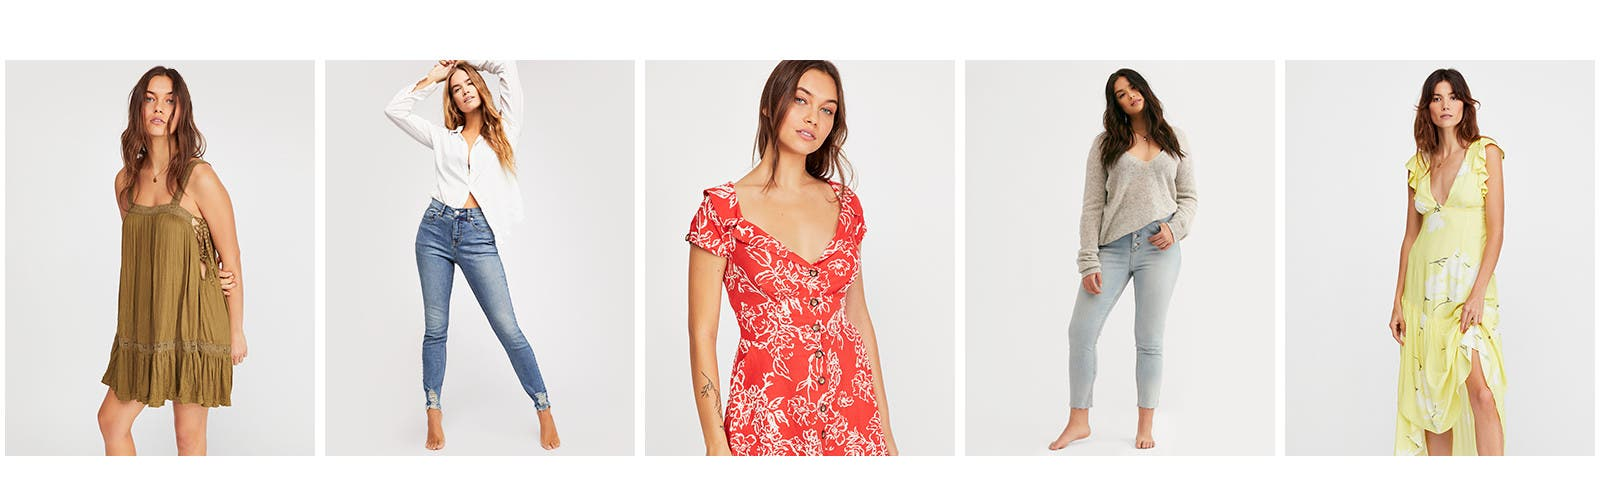 99314bb263c Spring Fever  New Arrivals in Full Bloom. Free People New Arrivals